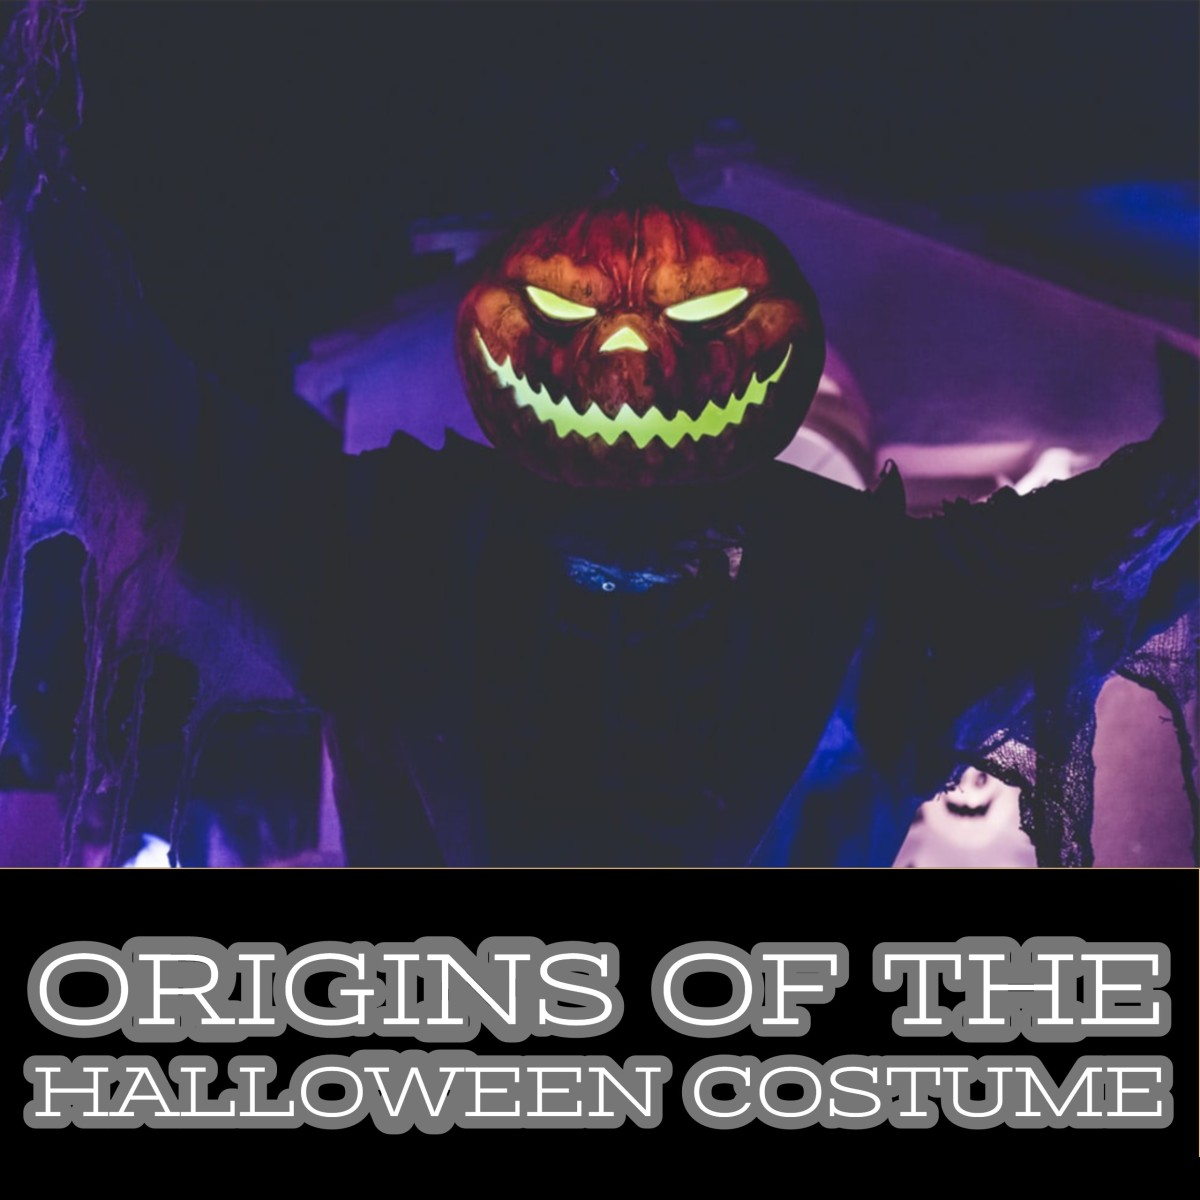 How did Halloween costumes originate?